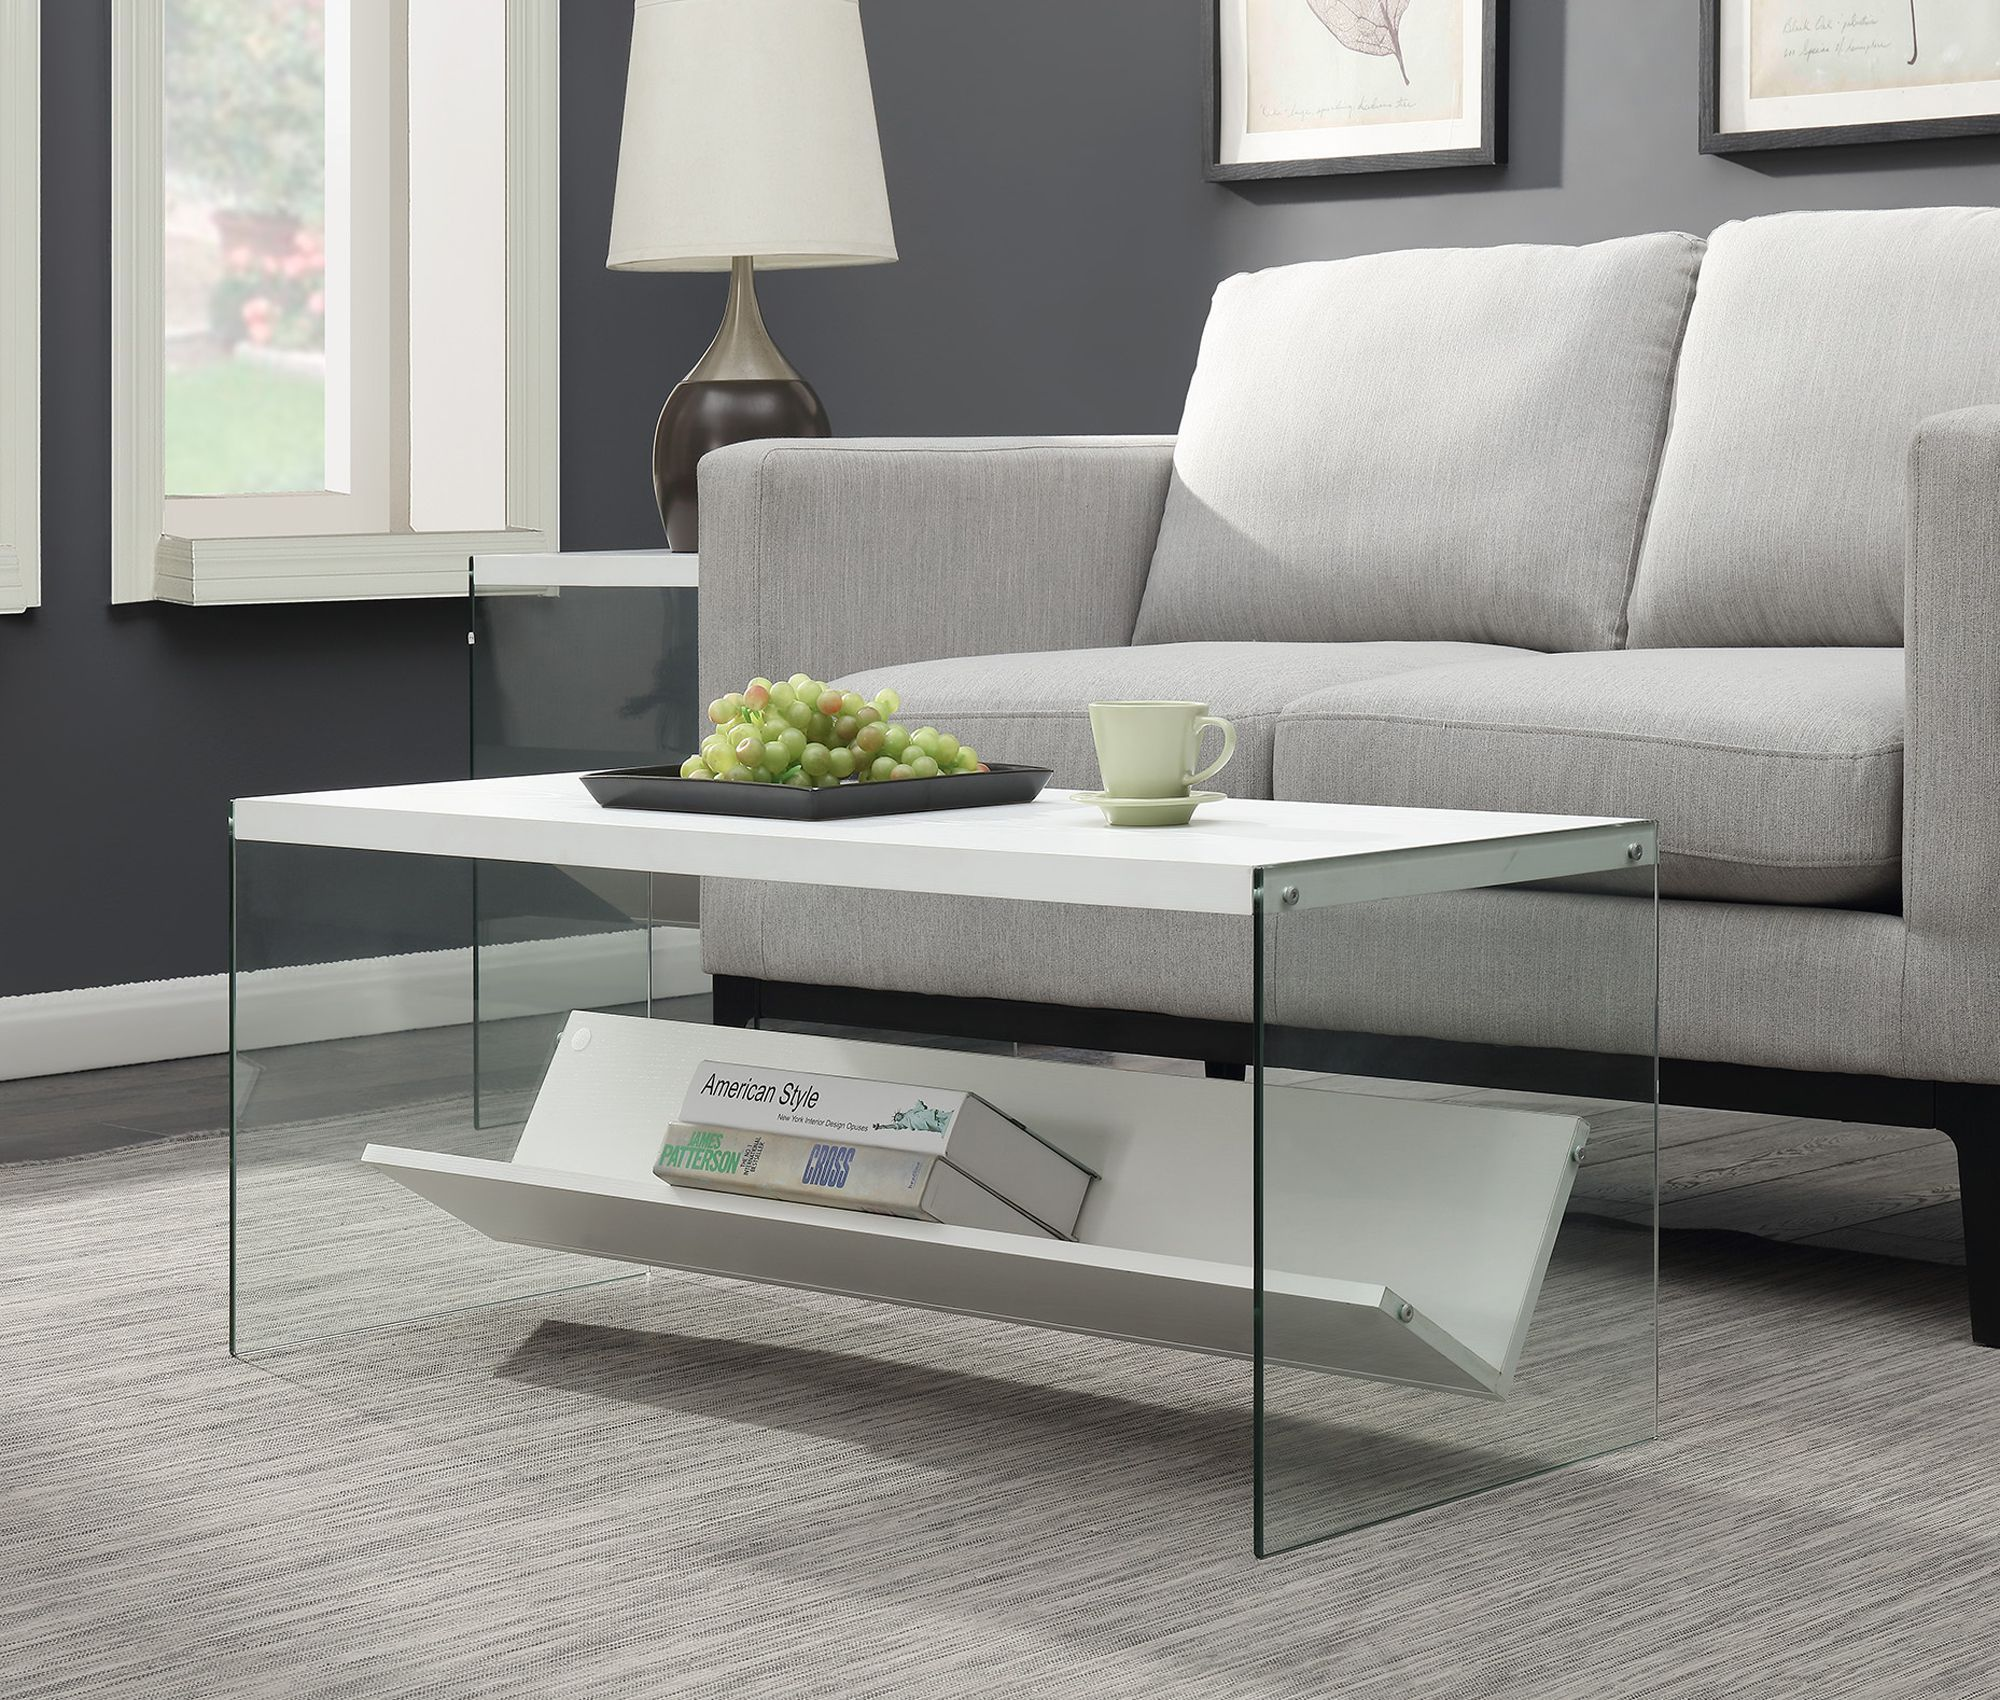 Living Room Table Walmart In 2020 Coffee Table Living Room Table Furniture [ 1700 x 2000 Pixel ]